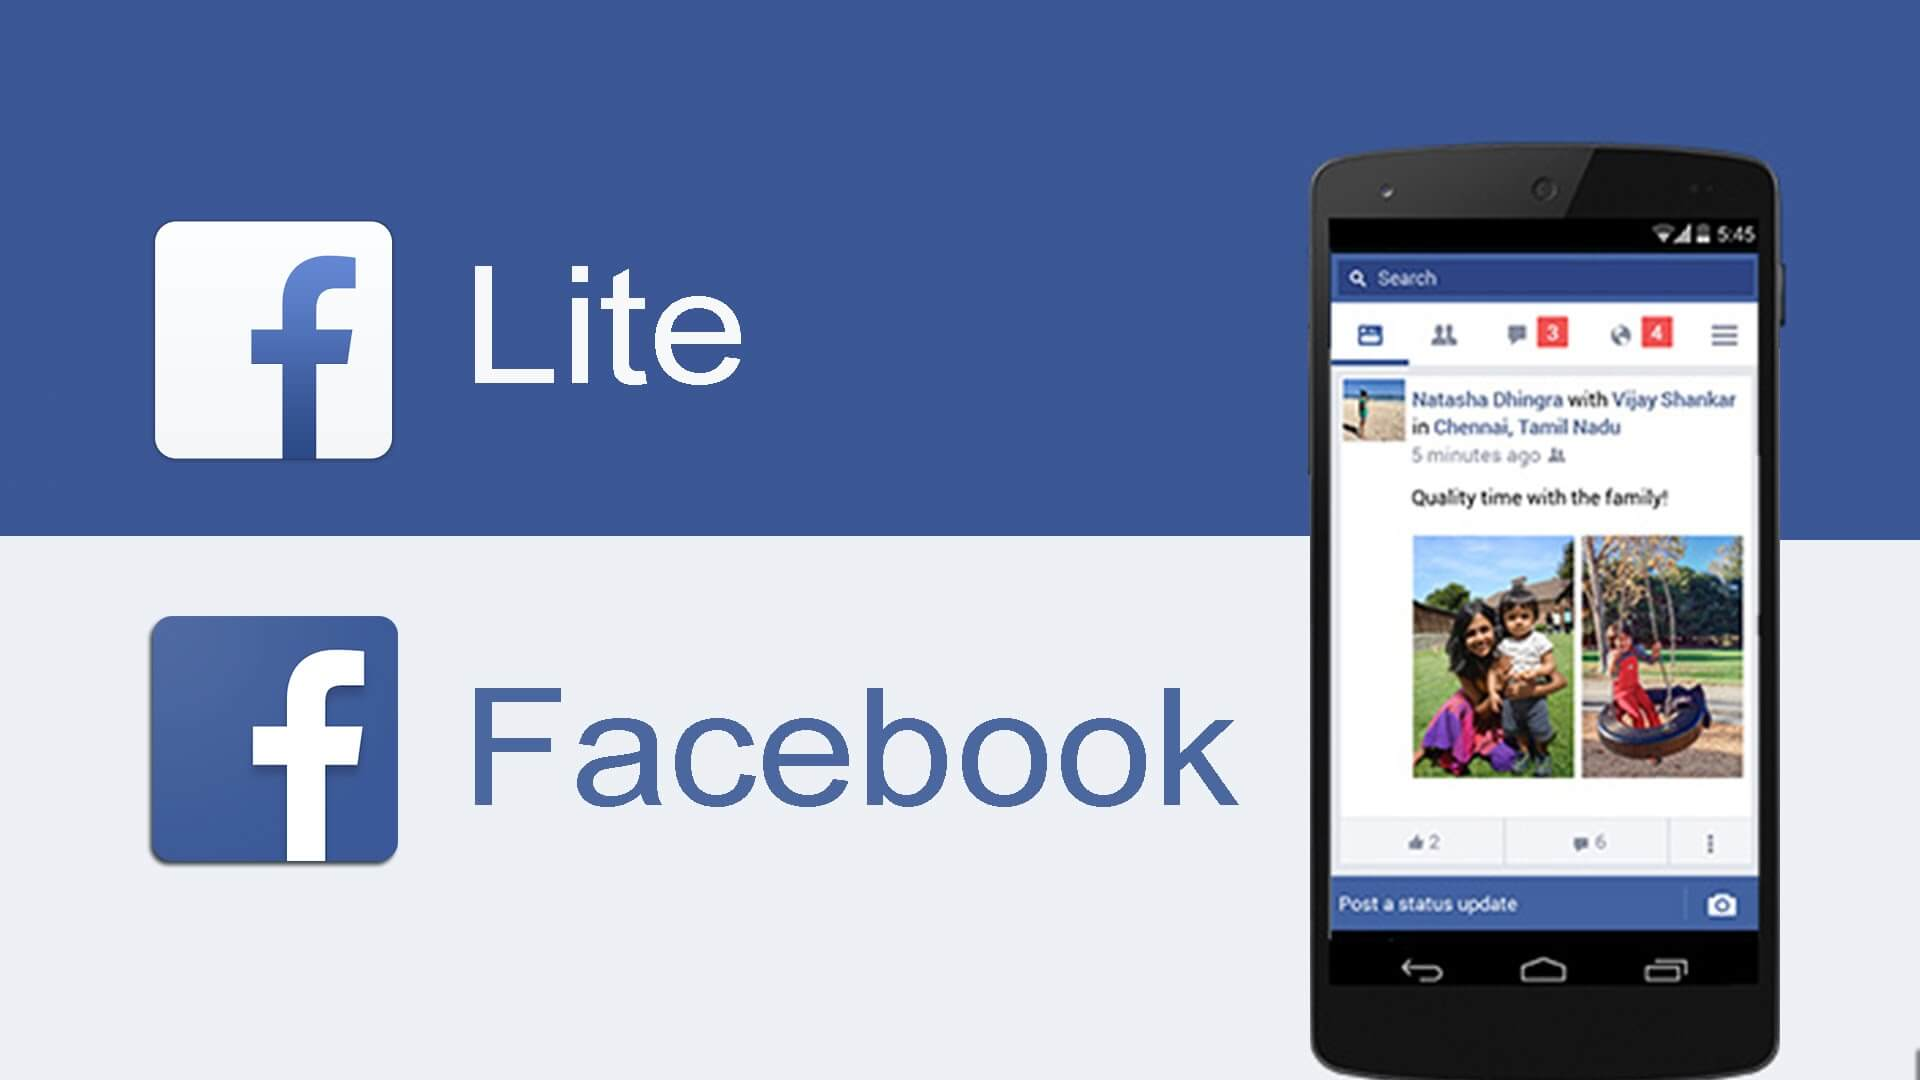 facebook installer for android free download